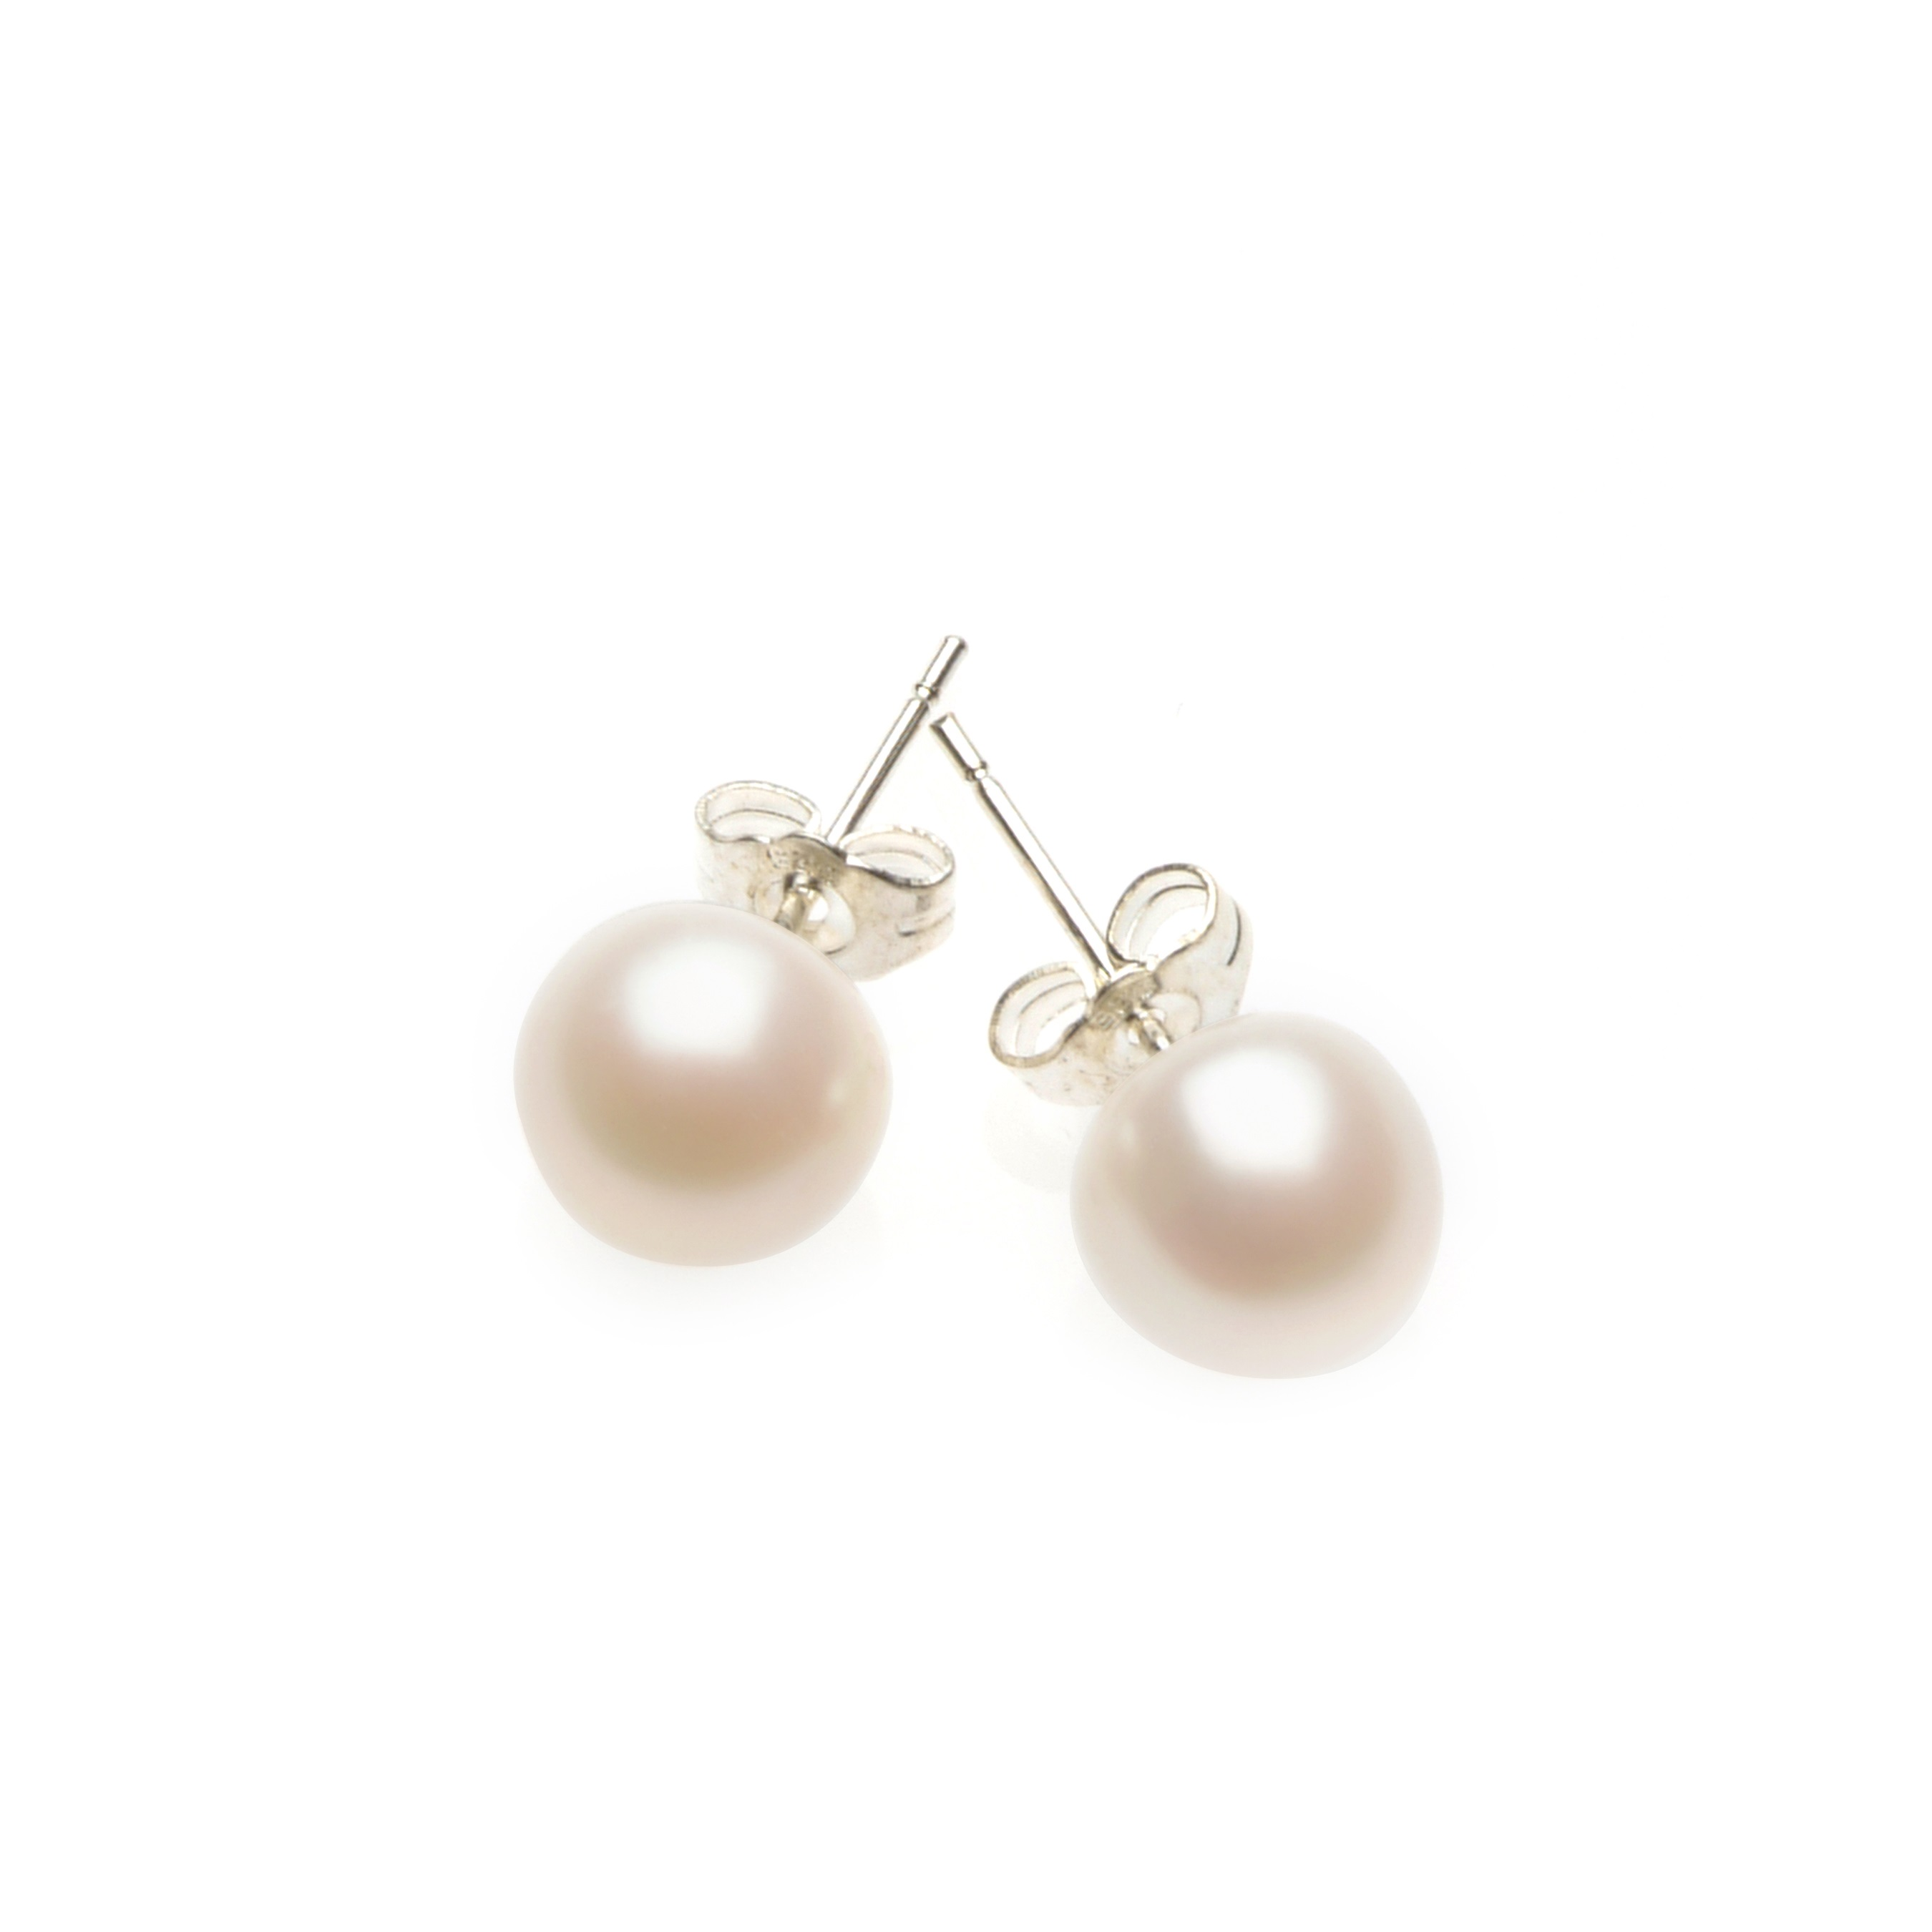 tahitian white hawaii shop handmade pearls online collections island in earrings black pearl jewelry gold